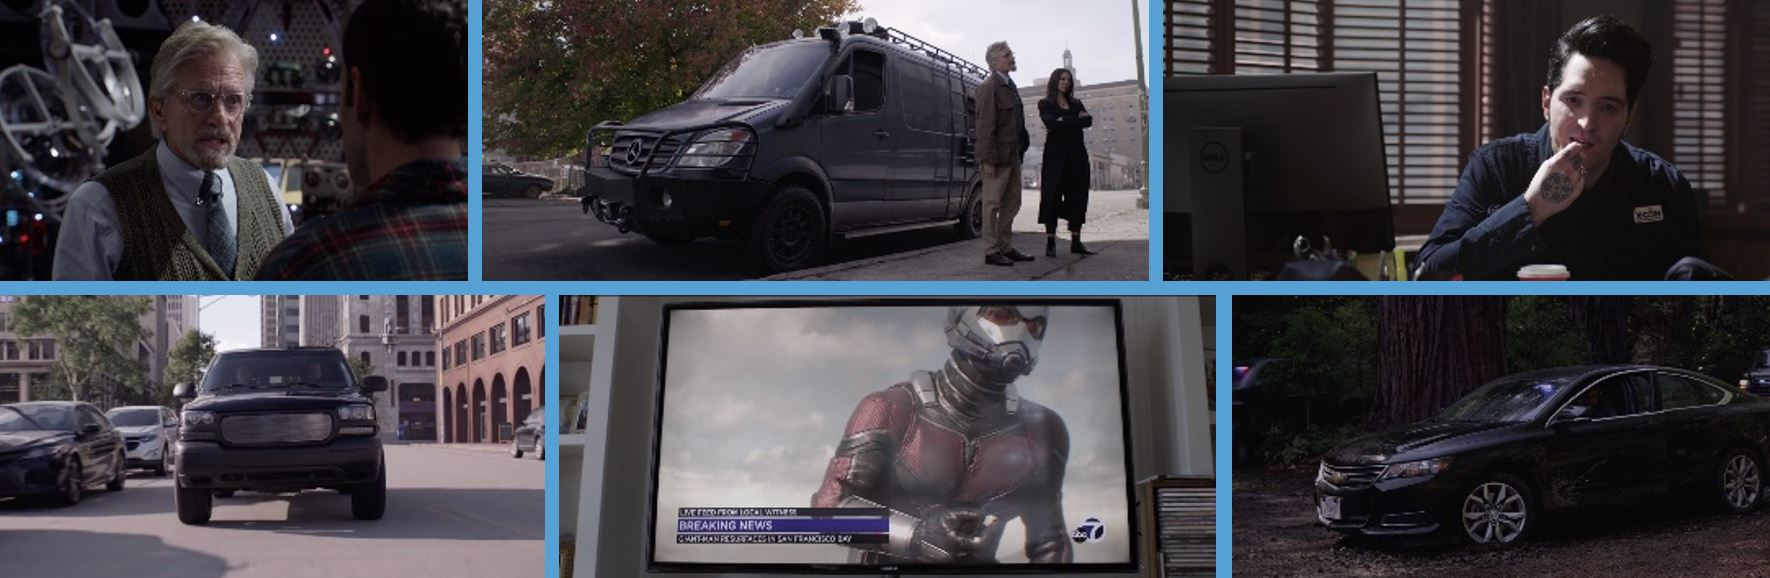 2018 product placement concave brand Tracking most brand filled movies branded entertainment marketing ant man ant-man and the wasp Dell mercedes benz mercedes-benz old focals chvrolet samsung GMC